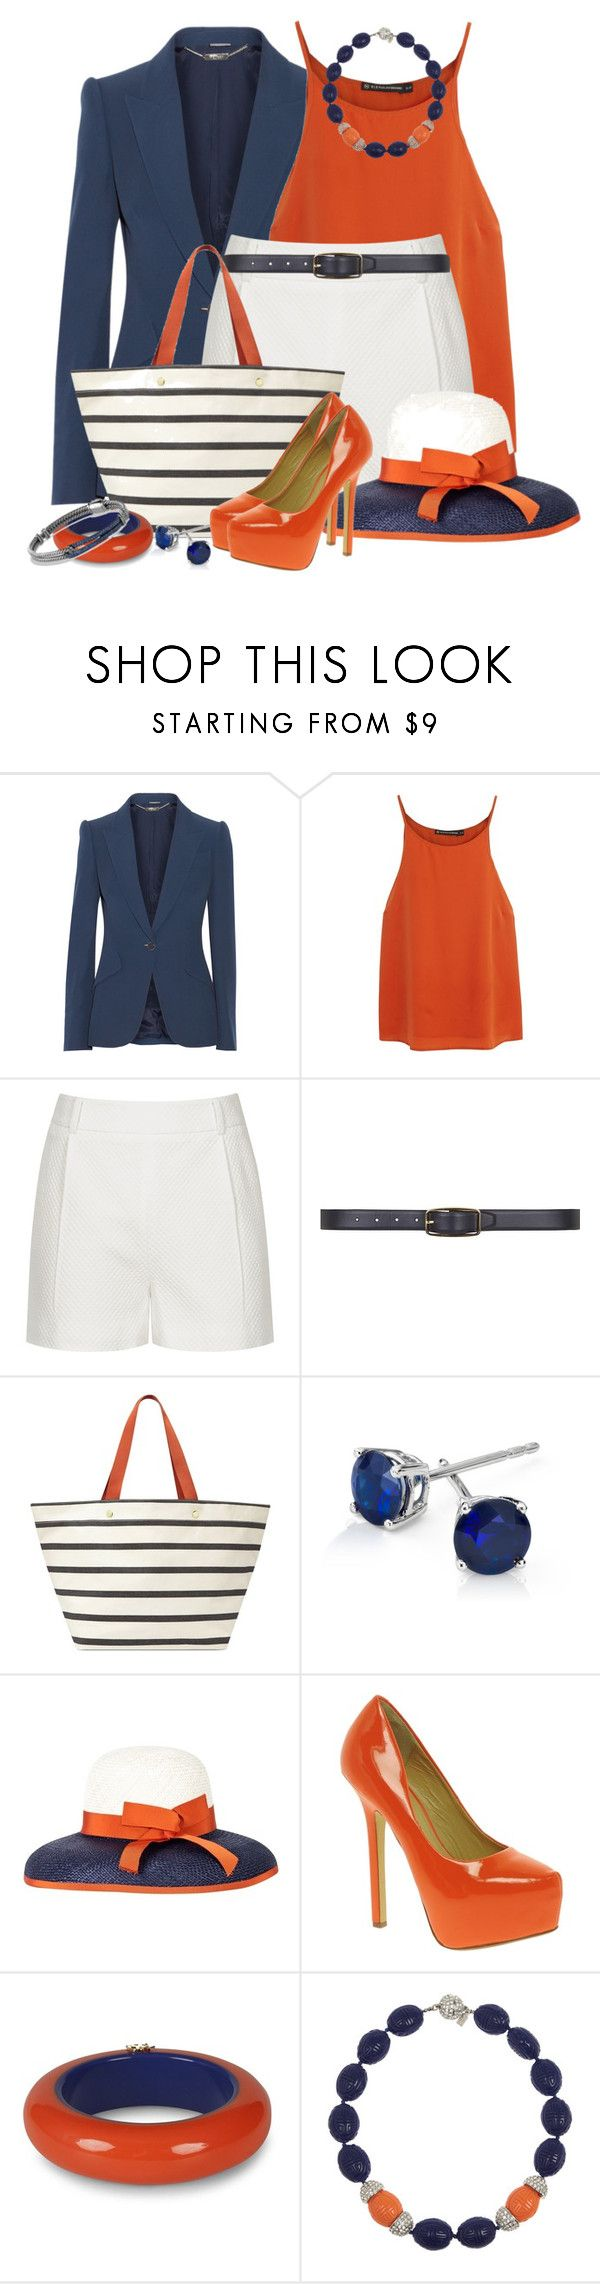 """""""Shorts, Heels & Hat"""" by brendariley-1 ❤ liked on Polyvore featuring Alexander McQueen, ViX, Reiss, Dorothy Perkins, FOSSIL, Blue Nile, Inverni, Chinese Laundry, Dsquared2 and Kenneth Jay Lane"""